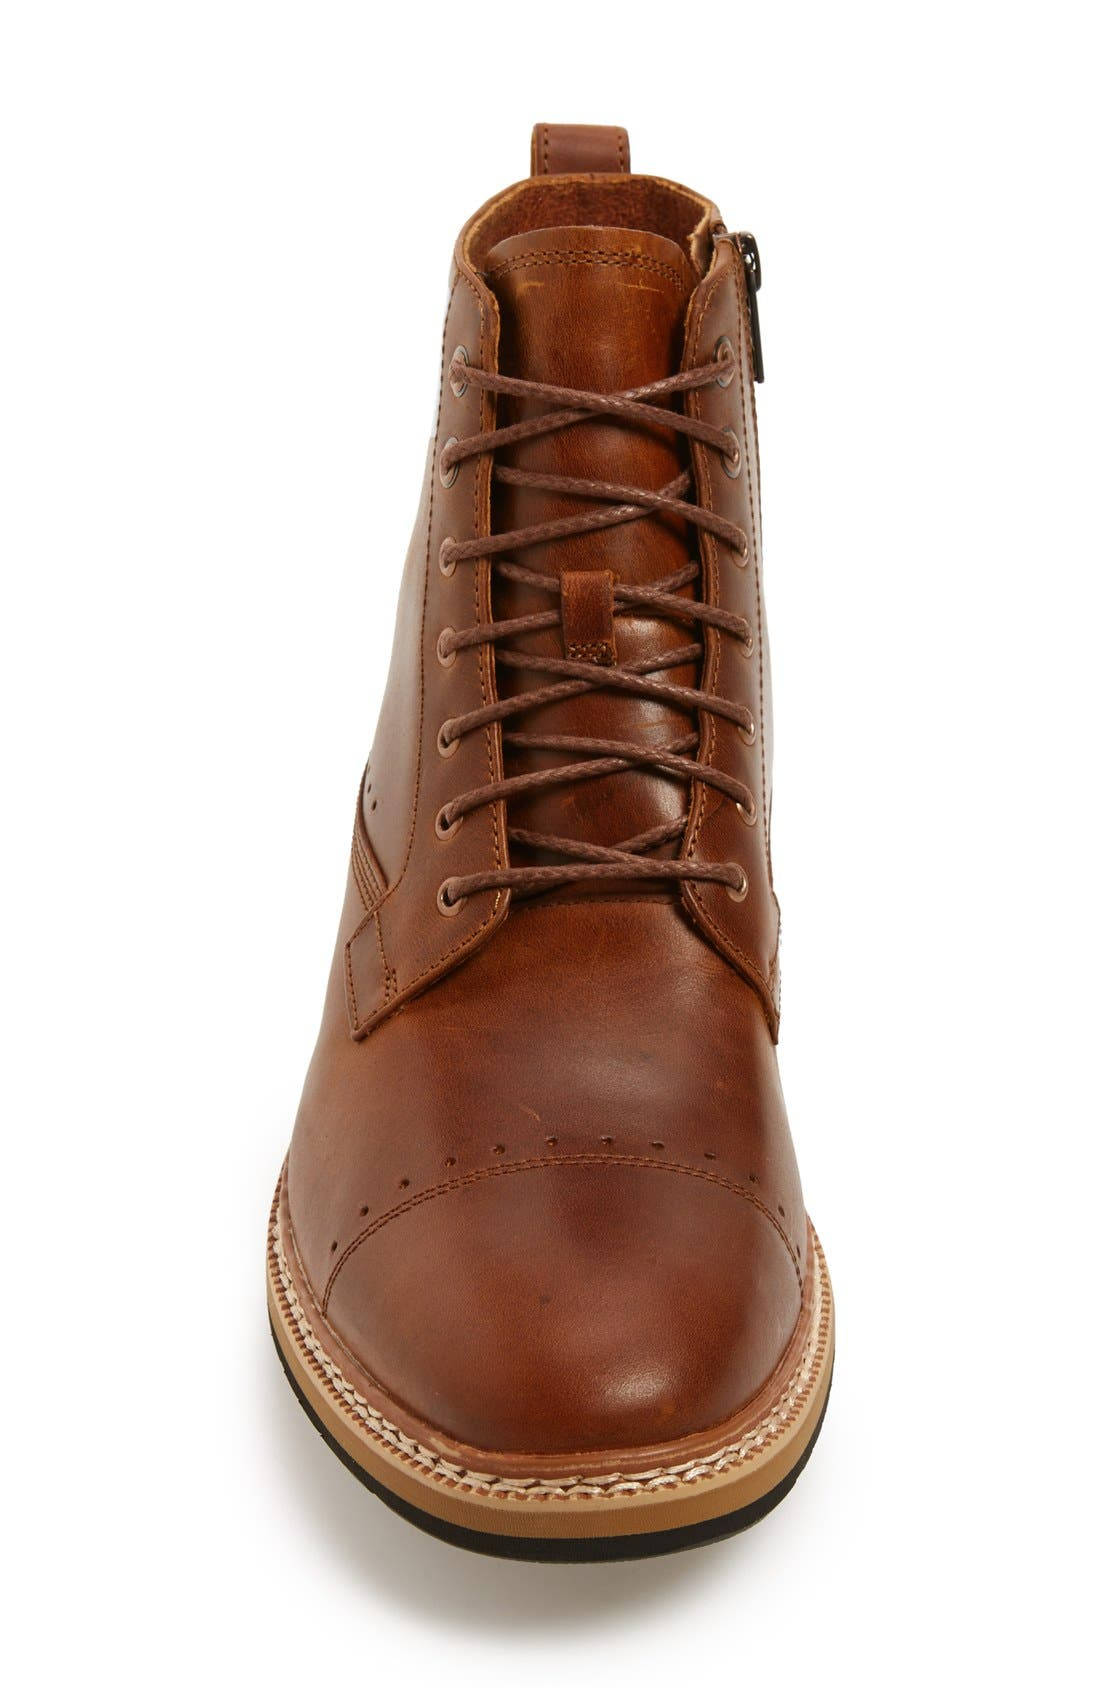 Westhaven 6 Side Zip Boot,                             Alternate thumbnail 3, color,                             LIGHT BROWN LEATHER